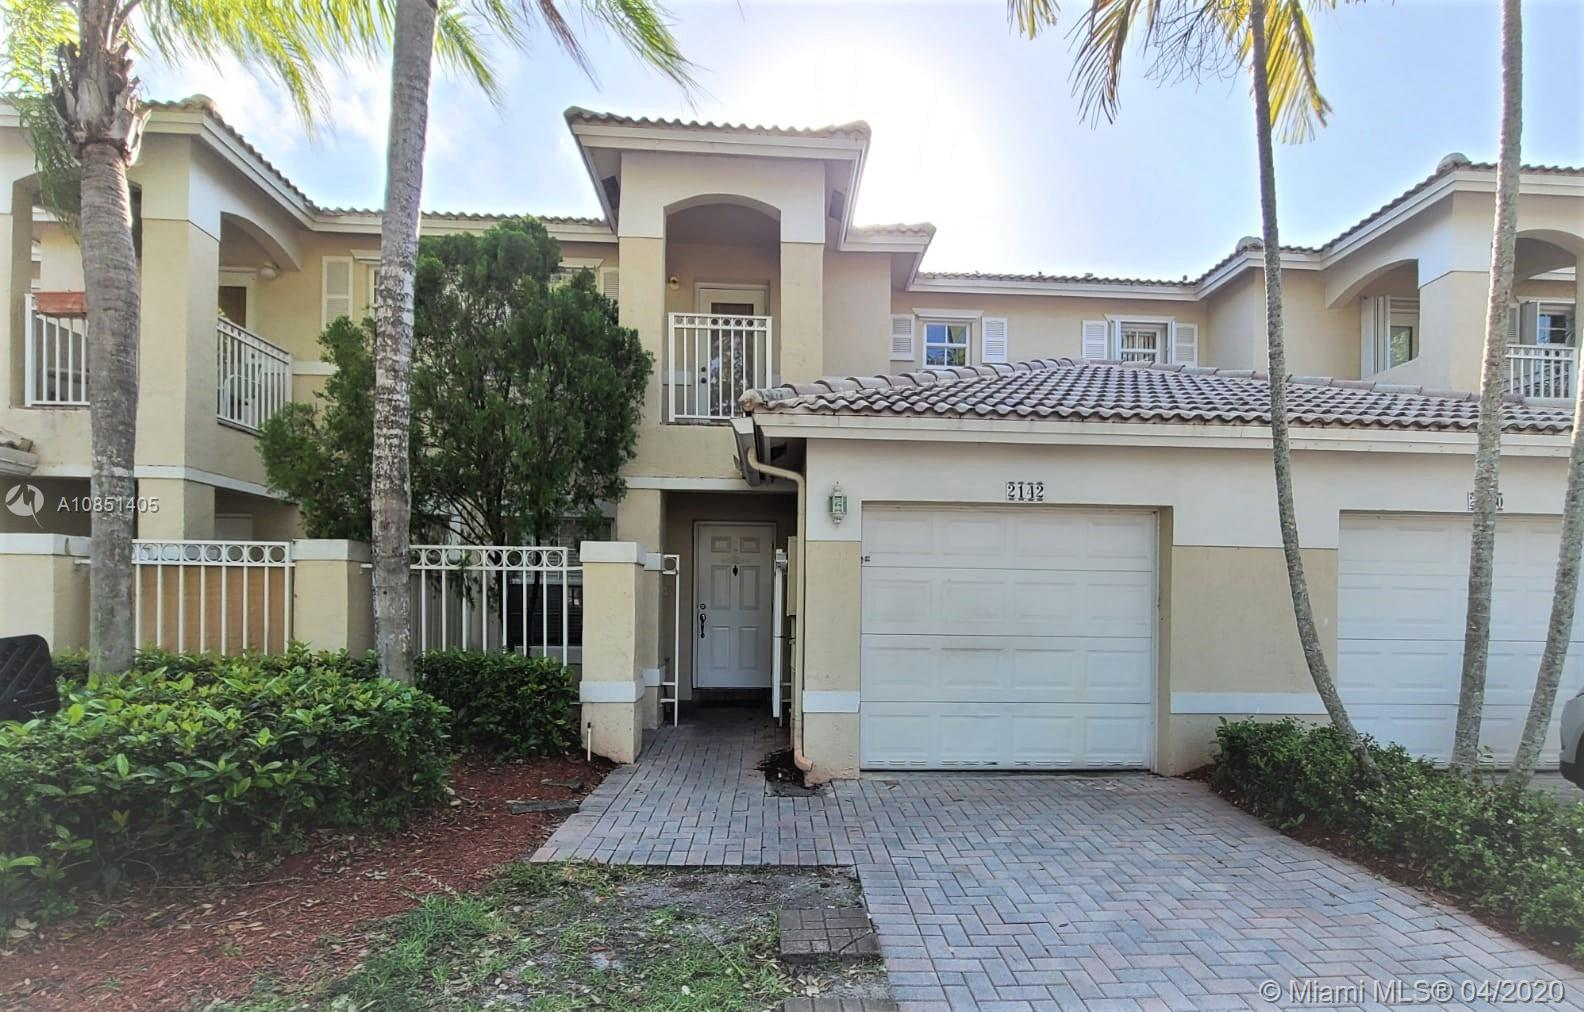 OWN THIS GREAT TOWNHOME IN ONE OF THE BEST COMMUNITIES OF PEMBROKE PINES. Live the resort style of Pembroke Isles or make your investment count in an easy to rent property. Three community pools, children playgrounds, tennis and basketball courts, plenty of green space for jogging and walking in a quiet environment. This well maintained townhome features 3 bedrooms, 2 1/2 baths, one car garage (converted to a 4th bedroom, can easily be used as a garage again). One car space in driveway and plenty of additional parking spaces available in front of the property. MUST SEE!!